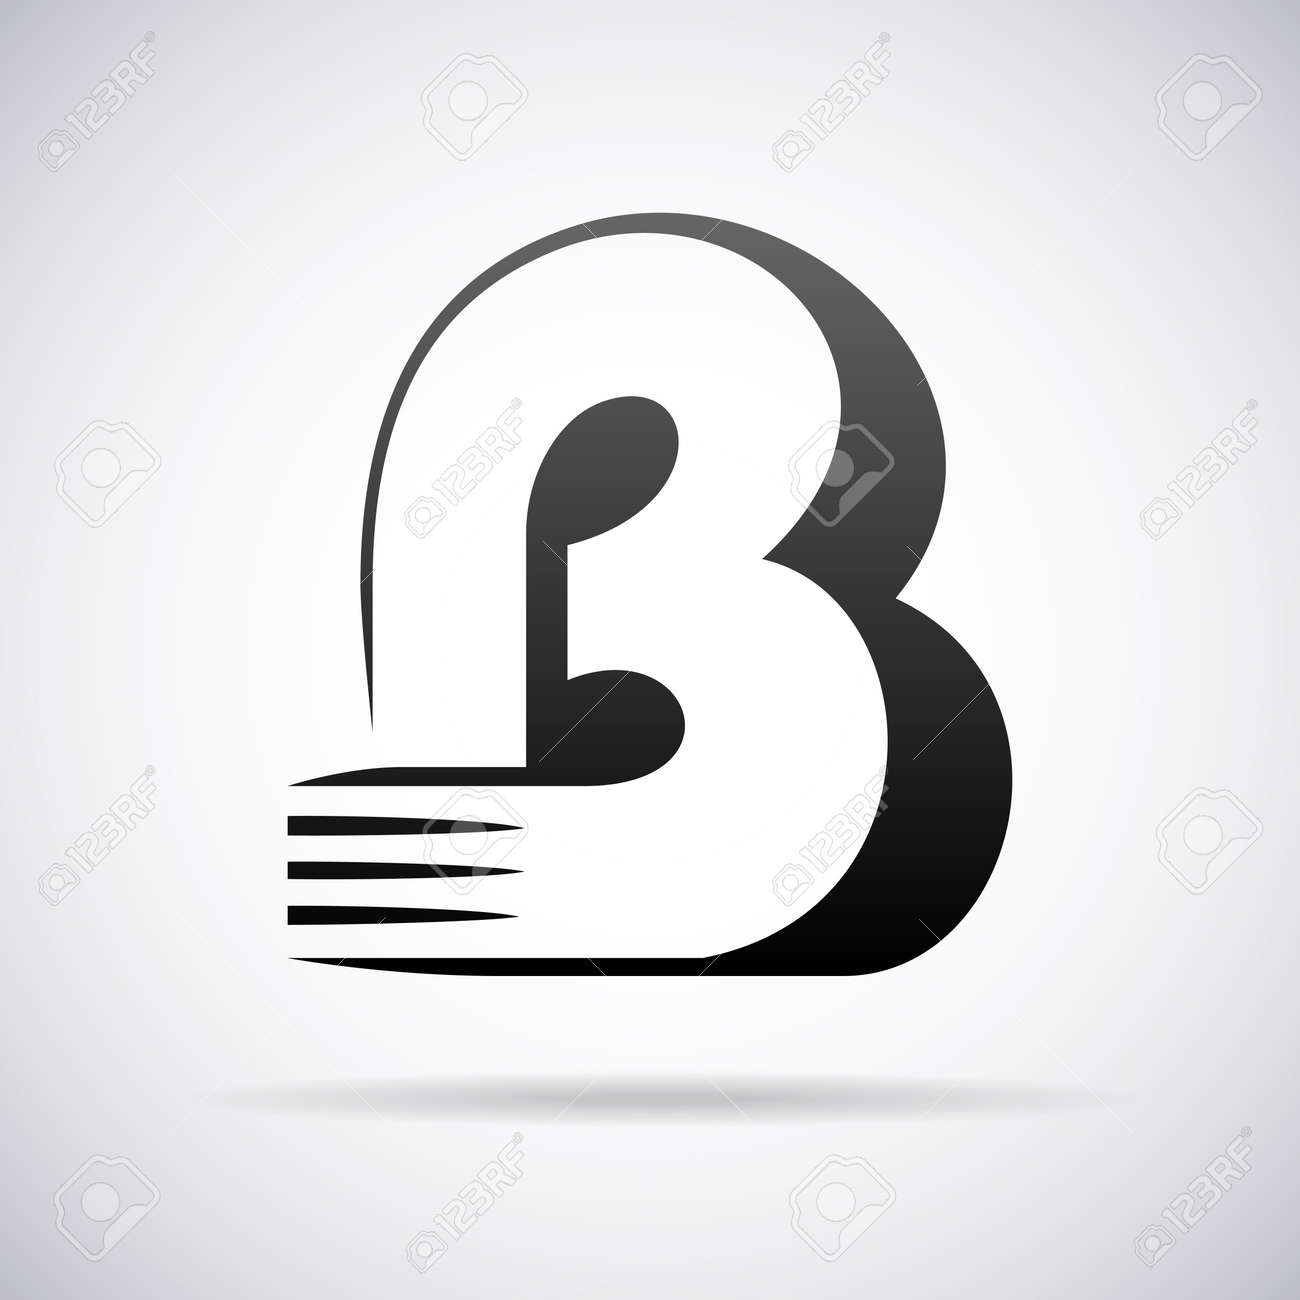 logo for letter b design template vector illustration stock vector 43081120